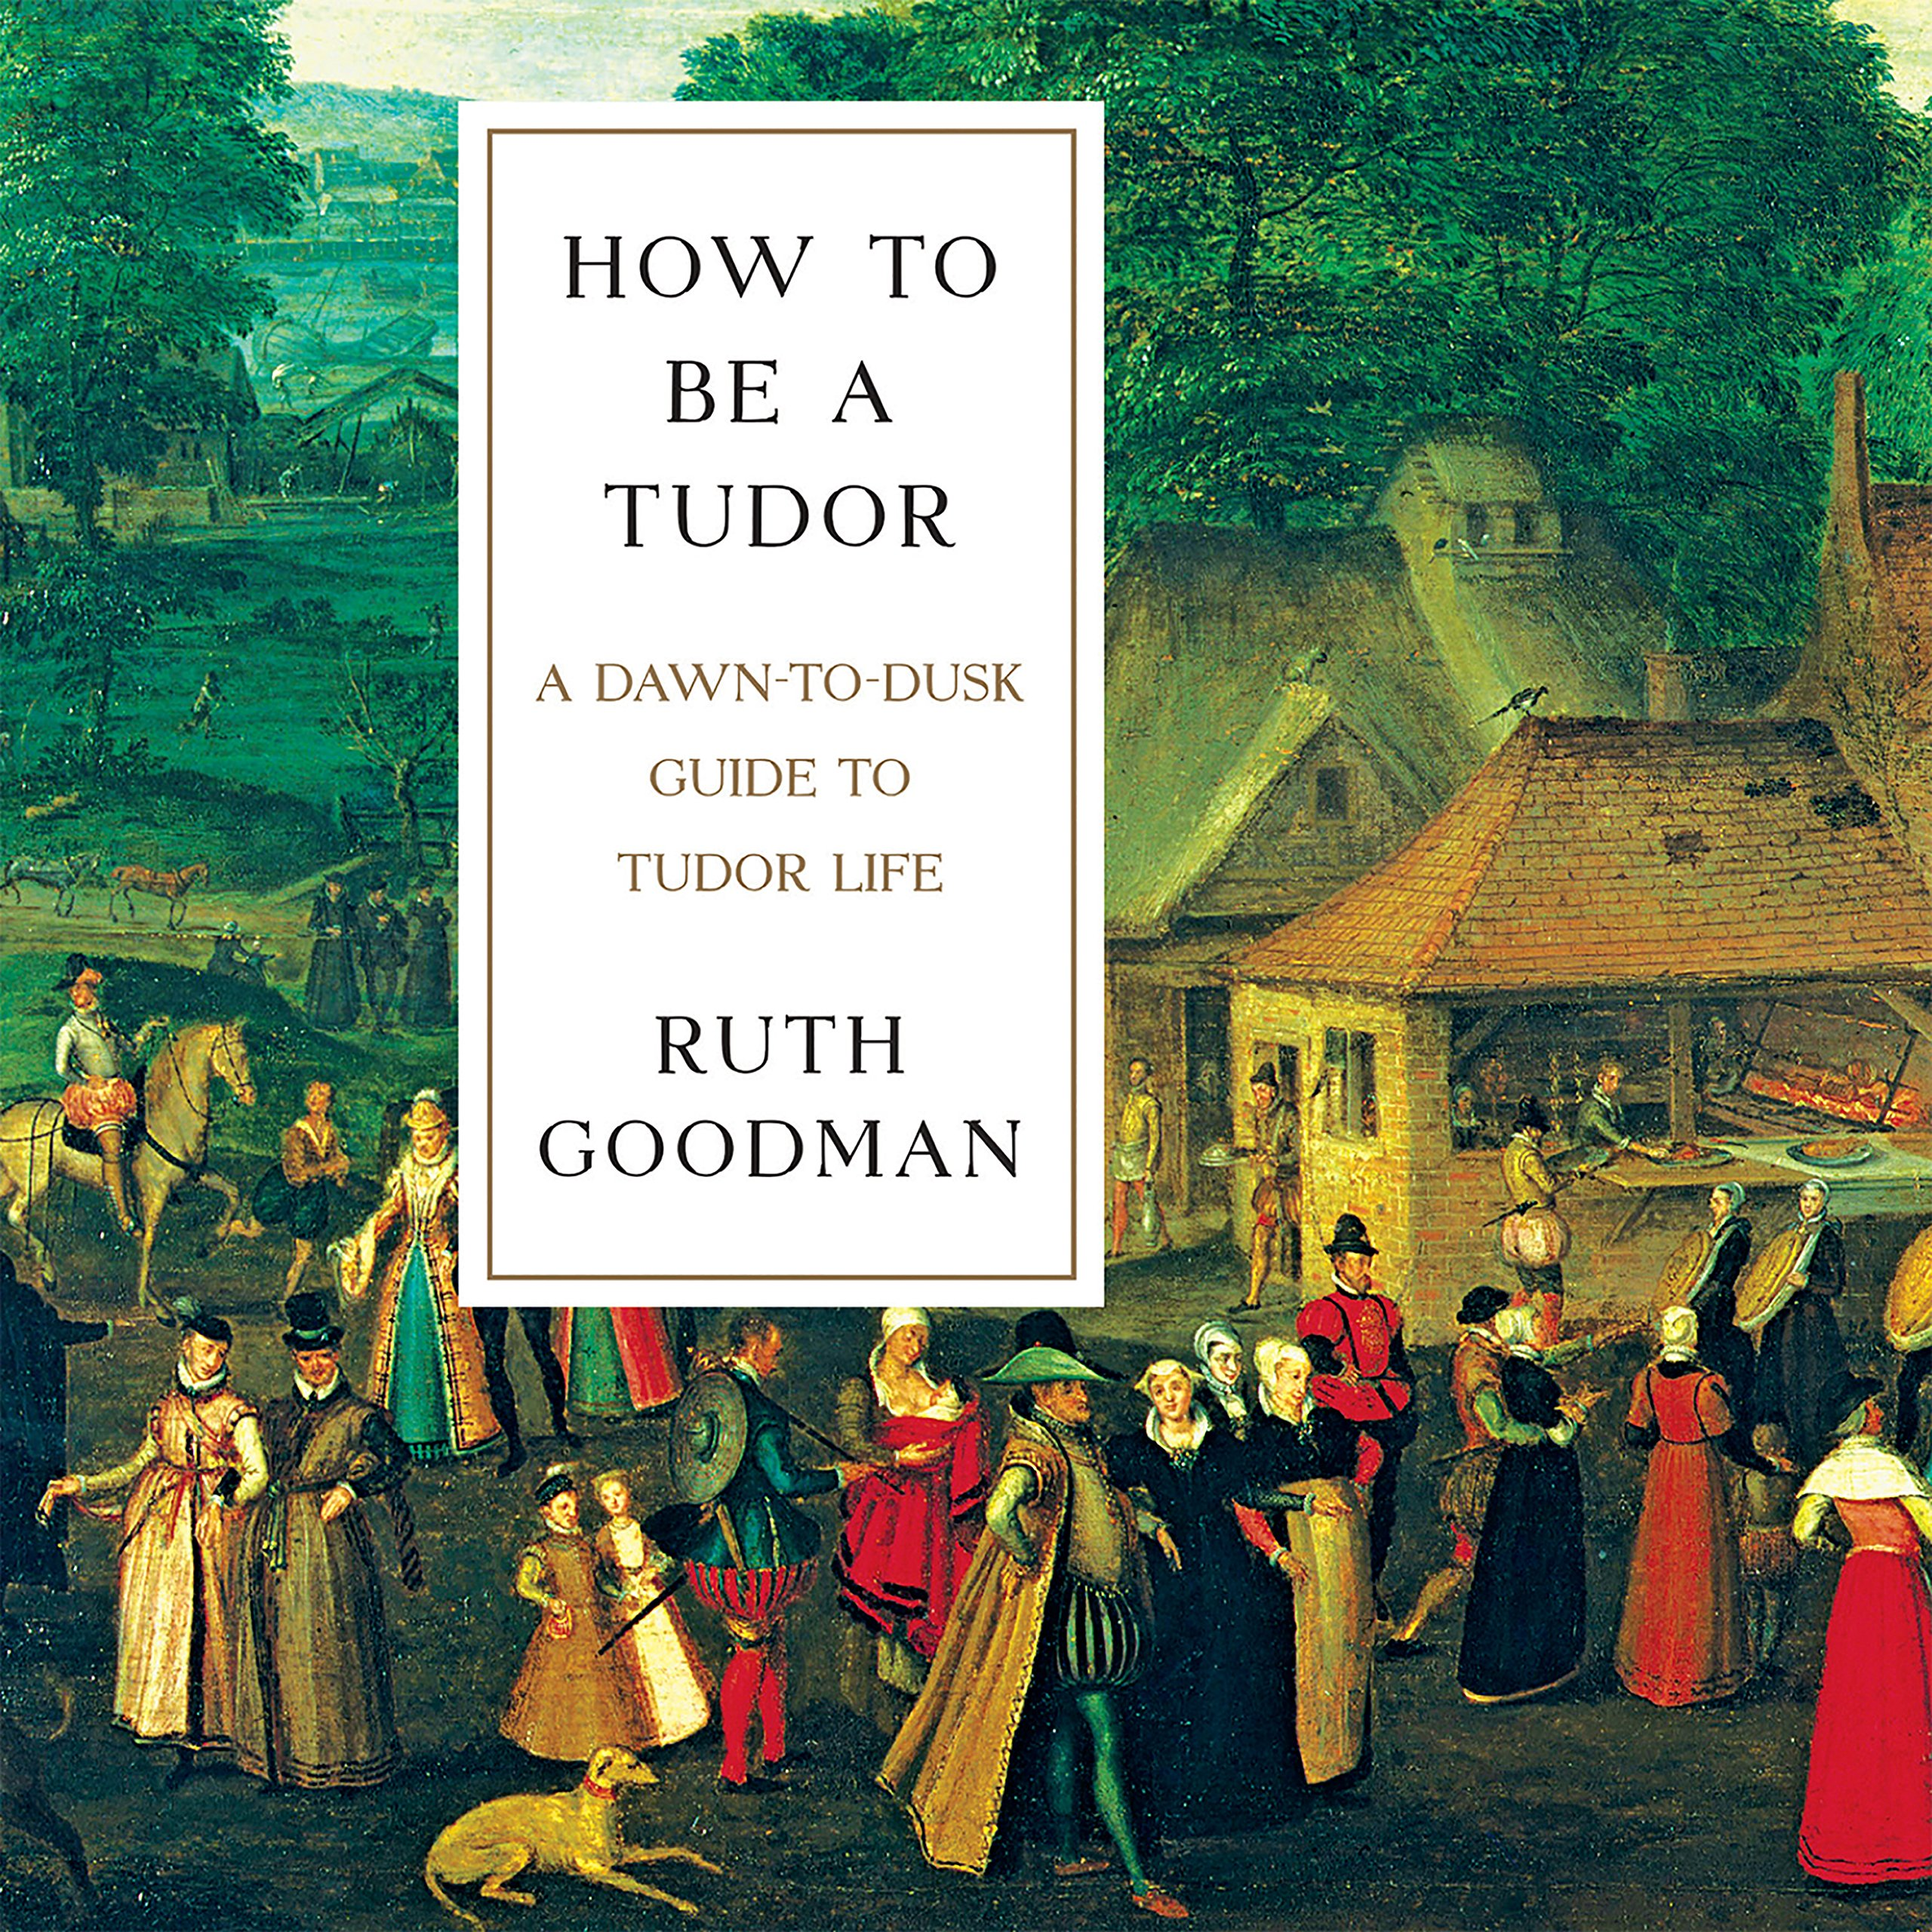 How To Be A Tudor: A Dawntodusk Guide To Tudor Life: Ruth Goodman,  Saved_videos_gadgets360_homescreeng